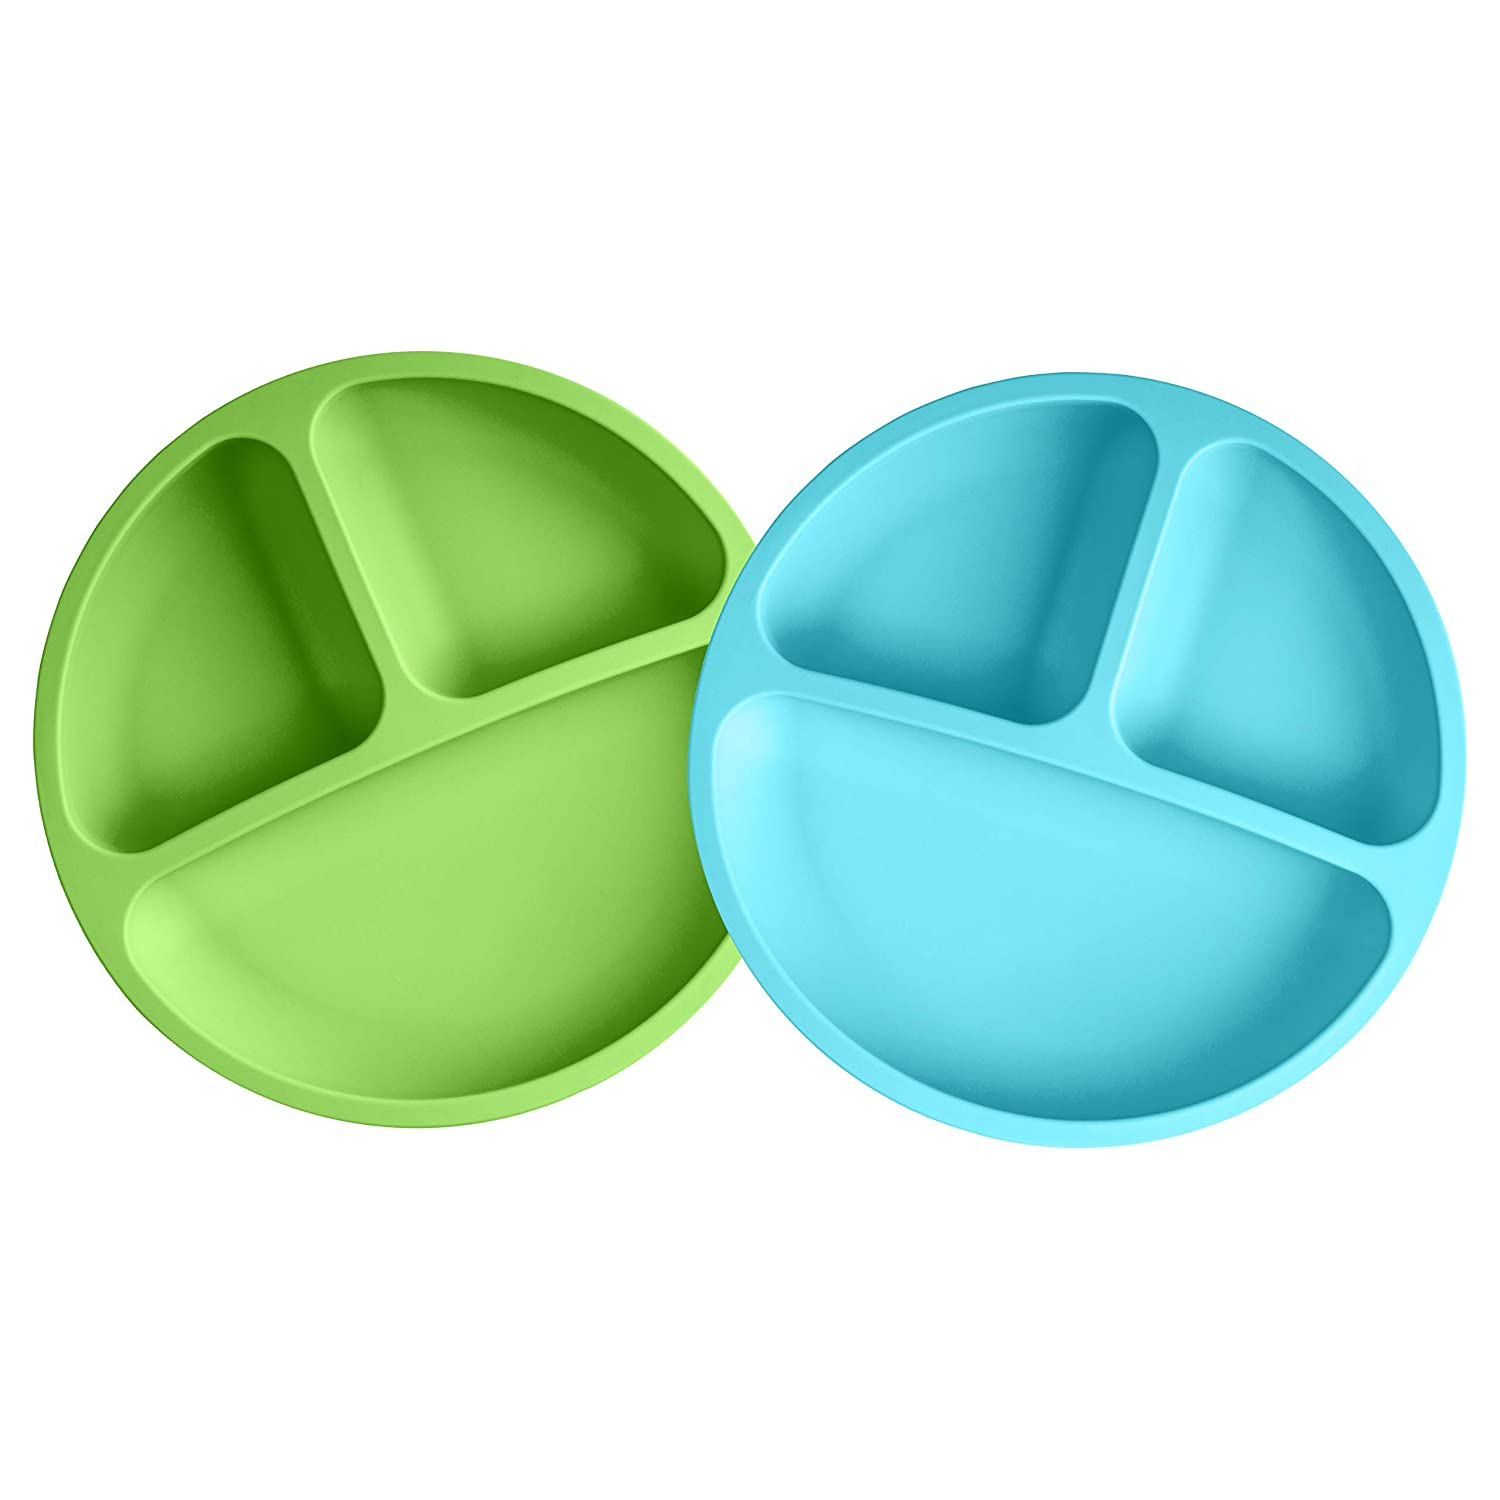 Baby Plates, Kmeivol Toddler Plates Without Suction Plates for Babies, 2 Pack Food Grade Baby Plate, Toddler Plate with 3 Divided Sections Separate Foods for Easy Baby Feeding (Blue/Green)